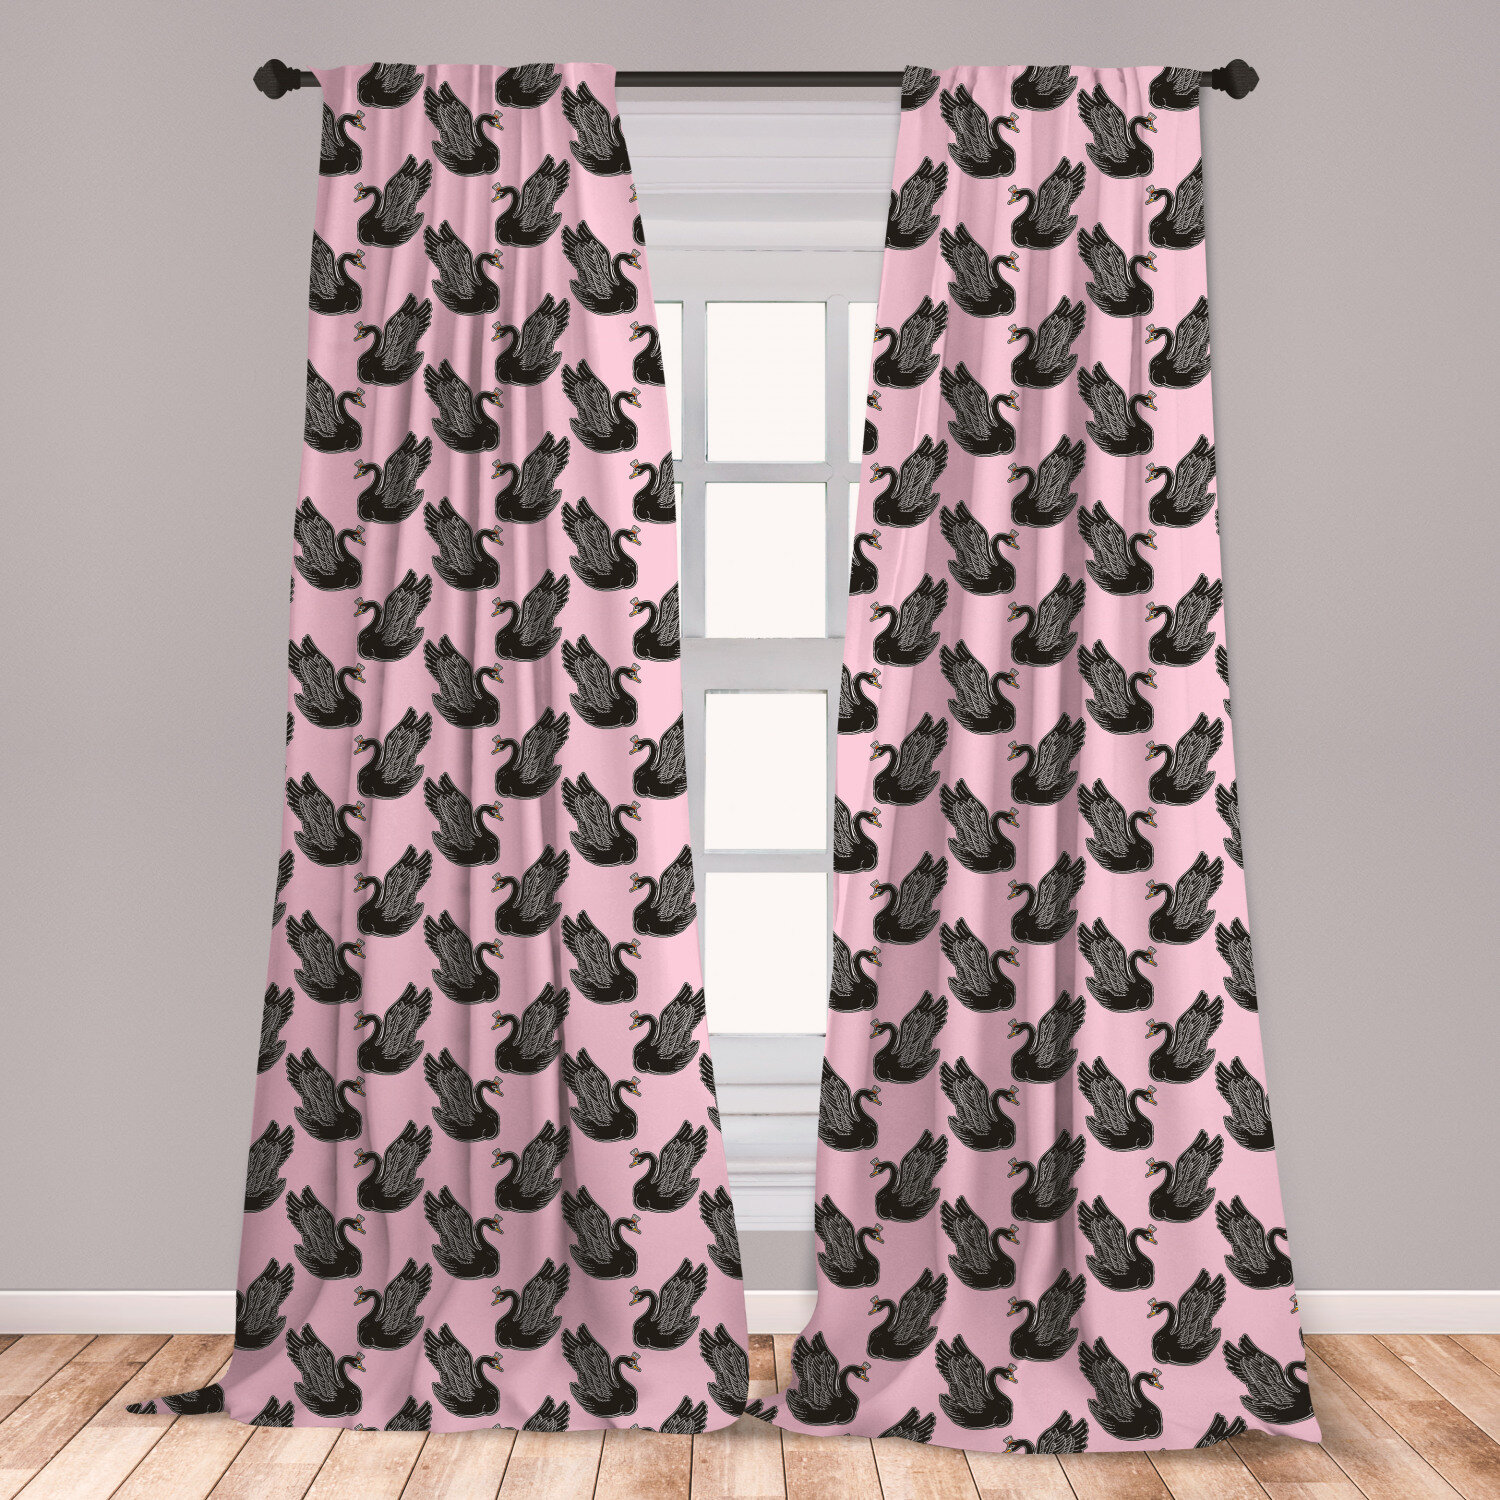 East Urban Home Ambesonne Swan Curtains Vintage Pin Up Pattern With Black Swan Princess For Girls Kids Nursery Window Treatments 2 Panel Set For Living Room Bedroom Decor 56 X 63 Pale